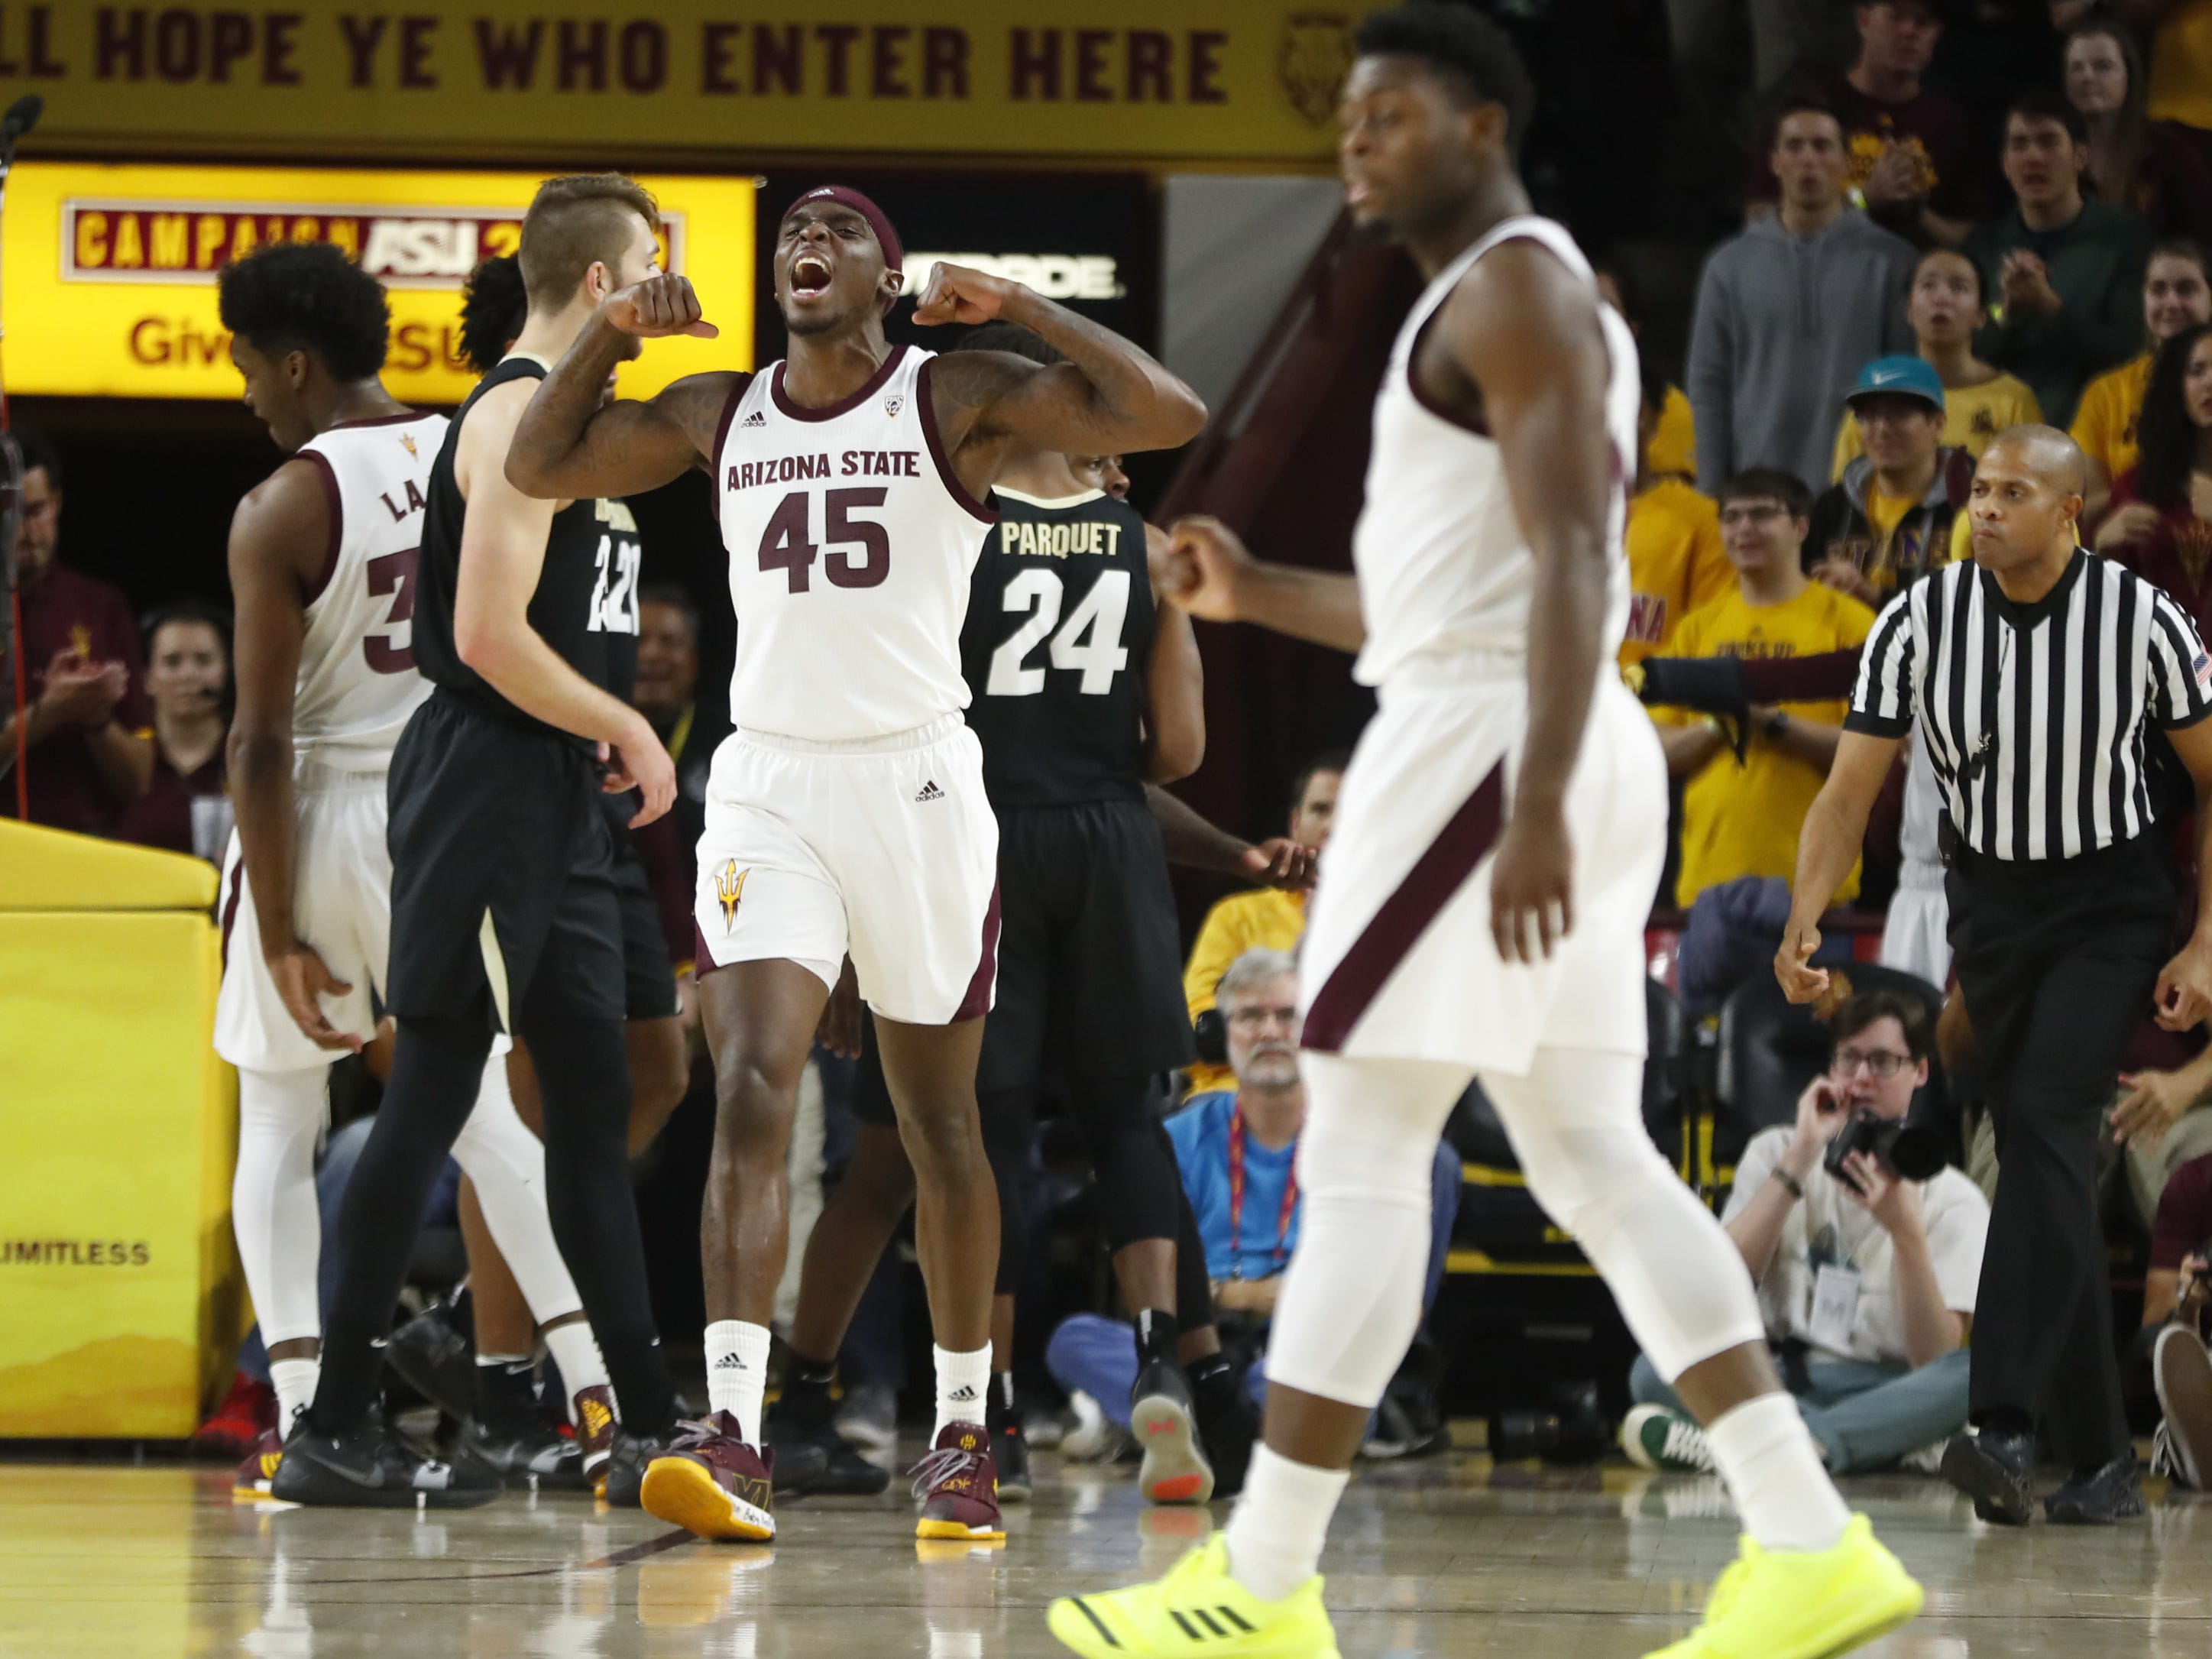 ASU's Zylan Cheatham (45) shows off his muscles after ASU scores against Colorado during the first half at Wells Fargo Arena in Tempe, Ariz. on January 5, 2019.